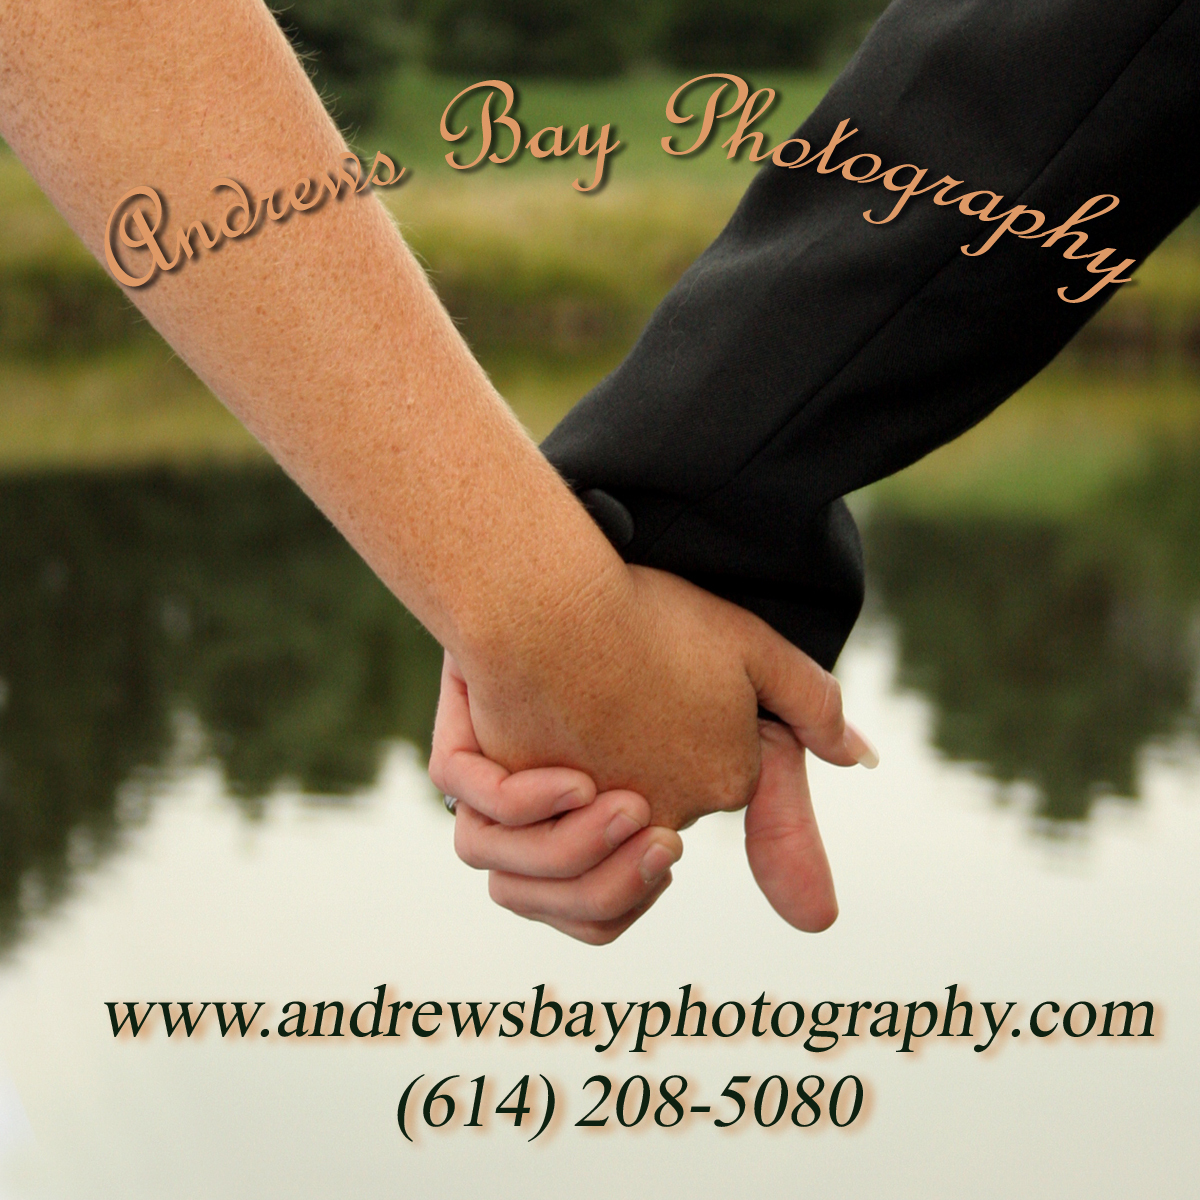 Photography, Wedding, Bridal, Photographer, Engagement, Boudoir, Glamour, Ohio, Columbus, Andrews bay photography